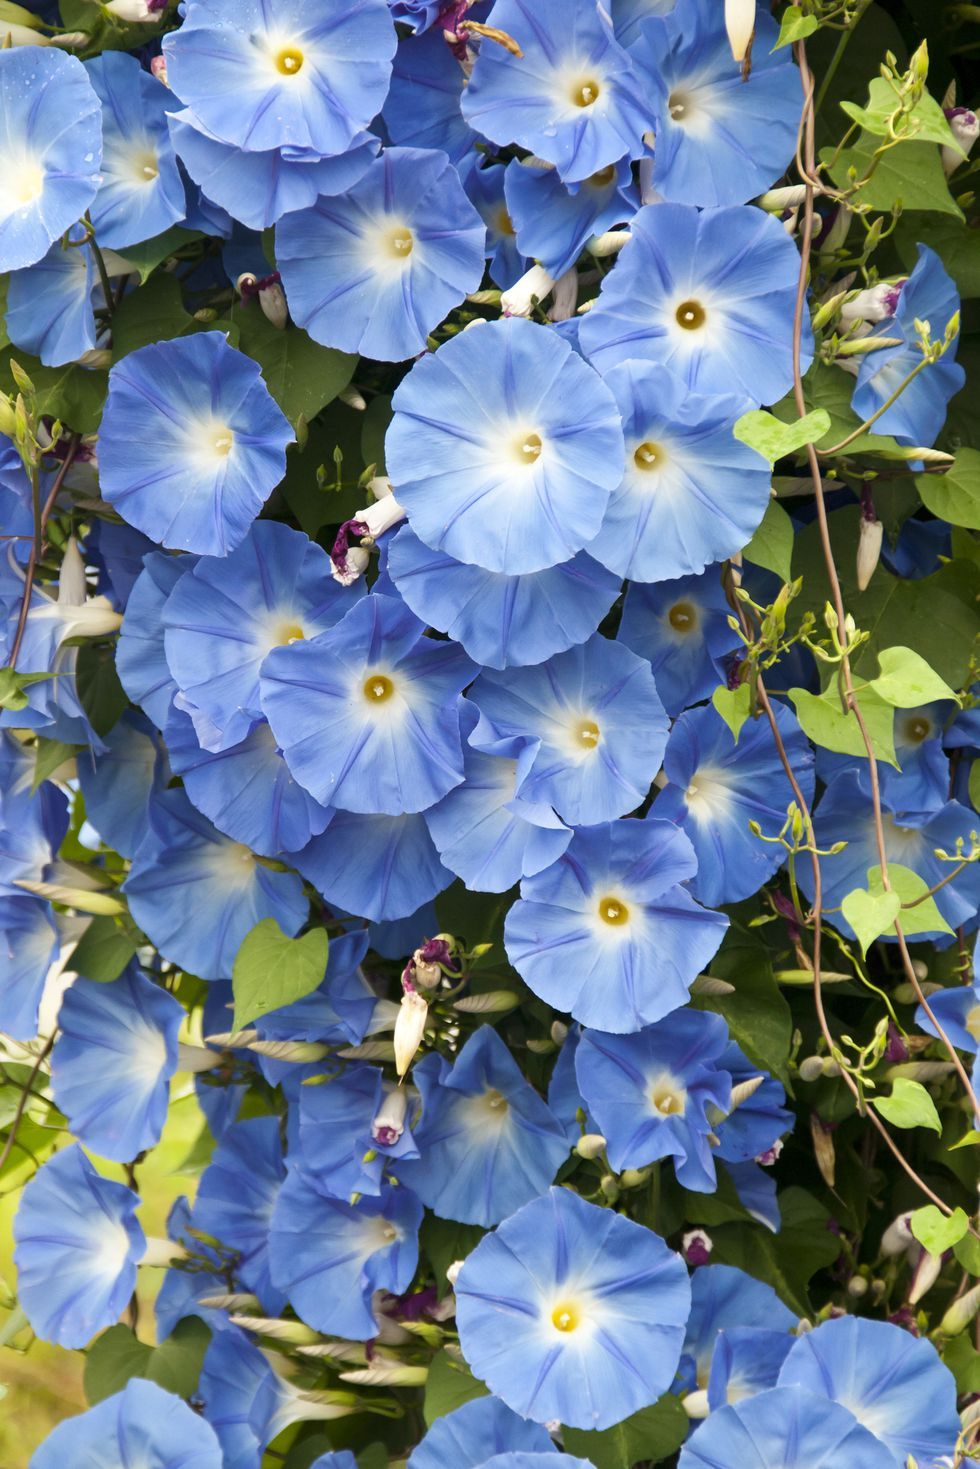 The Surprising Meanings Behind Your Favorite Flowers Blue Flowers Garden Morning Glory Flowers Blue Morning Glory